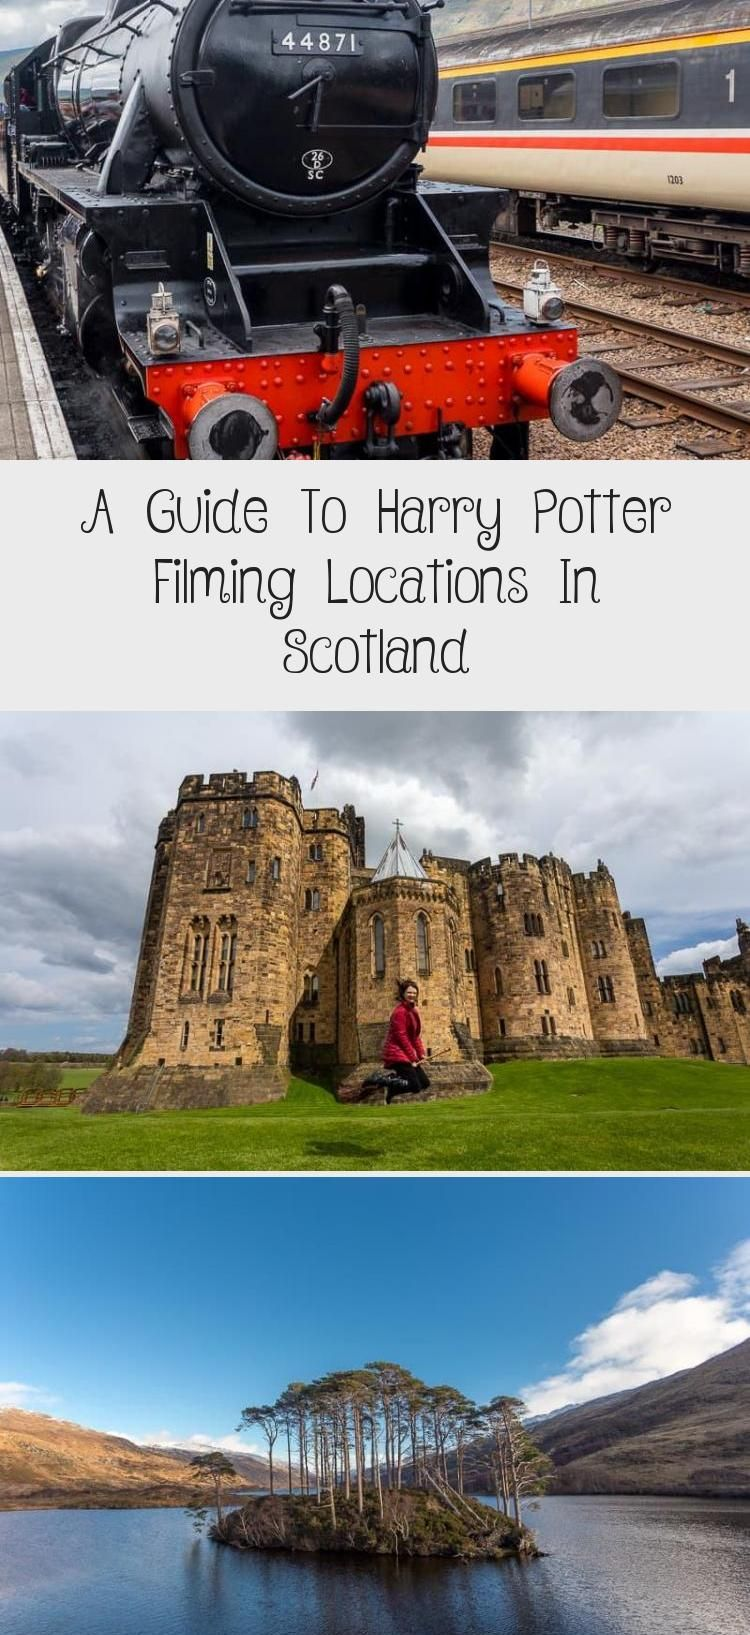 A Comprehensive And Detailed Guide To 12 Harry Potter Filming Locations In Scotland Including In 2020 Filming Locations Harry Potter Filming Locations Movie Locations